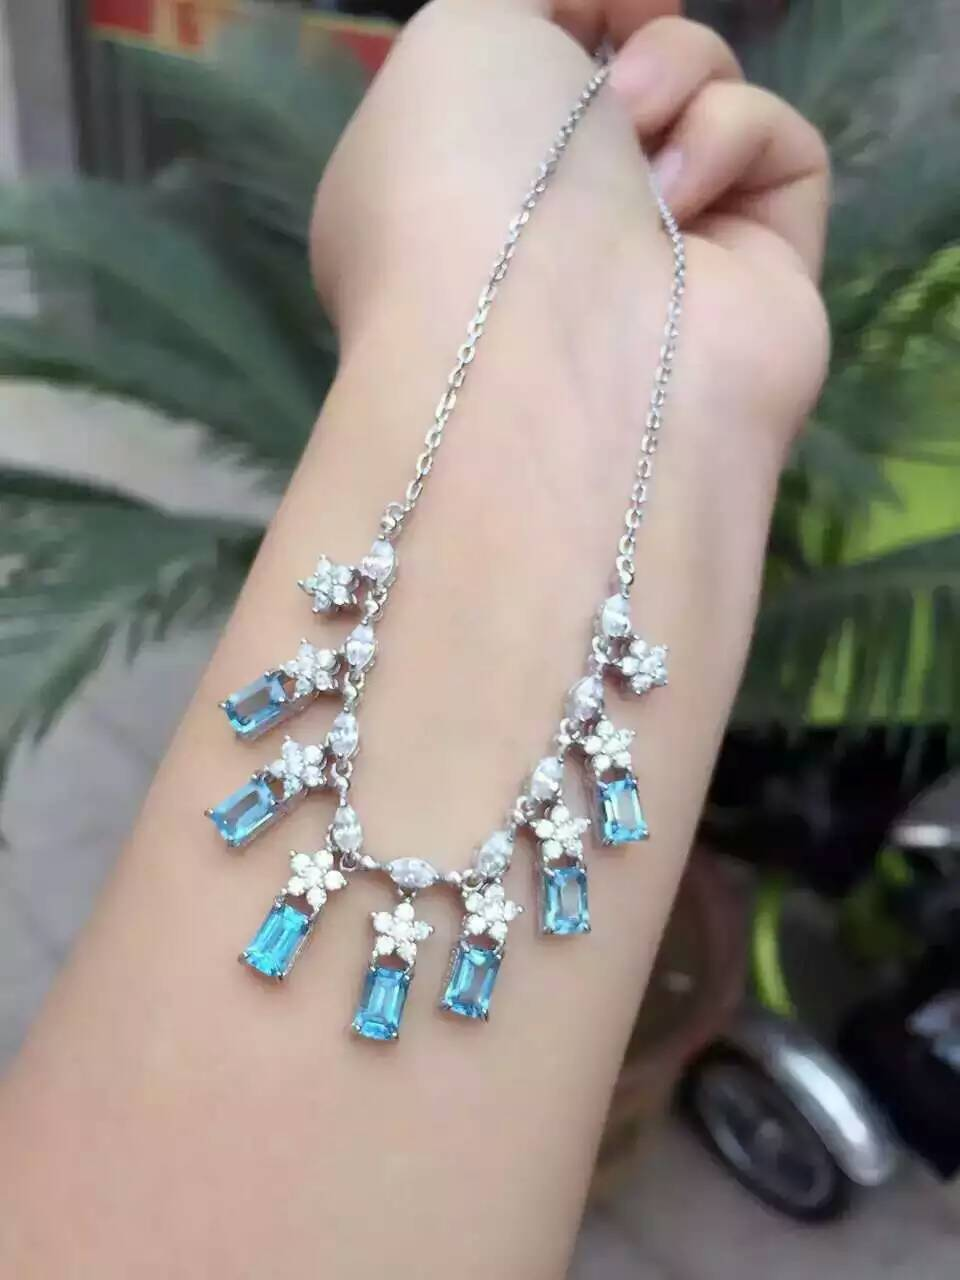 Natural blue topaz stone Necklace Natural Gemstone Pendant Necklace 925 sliver trendy Luxury Square snowflake women JewelryNatural blue topaz stone Necklace Natural Gemstone Pendant Necklace 925 sliver trendy Luxury Square snowflake women Jewelry